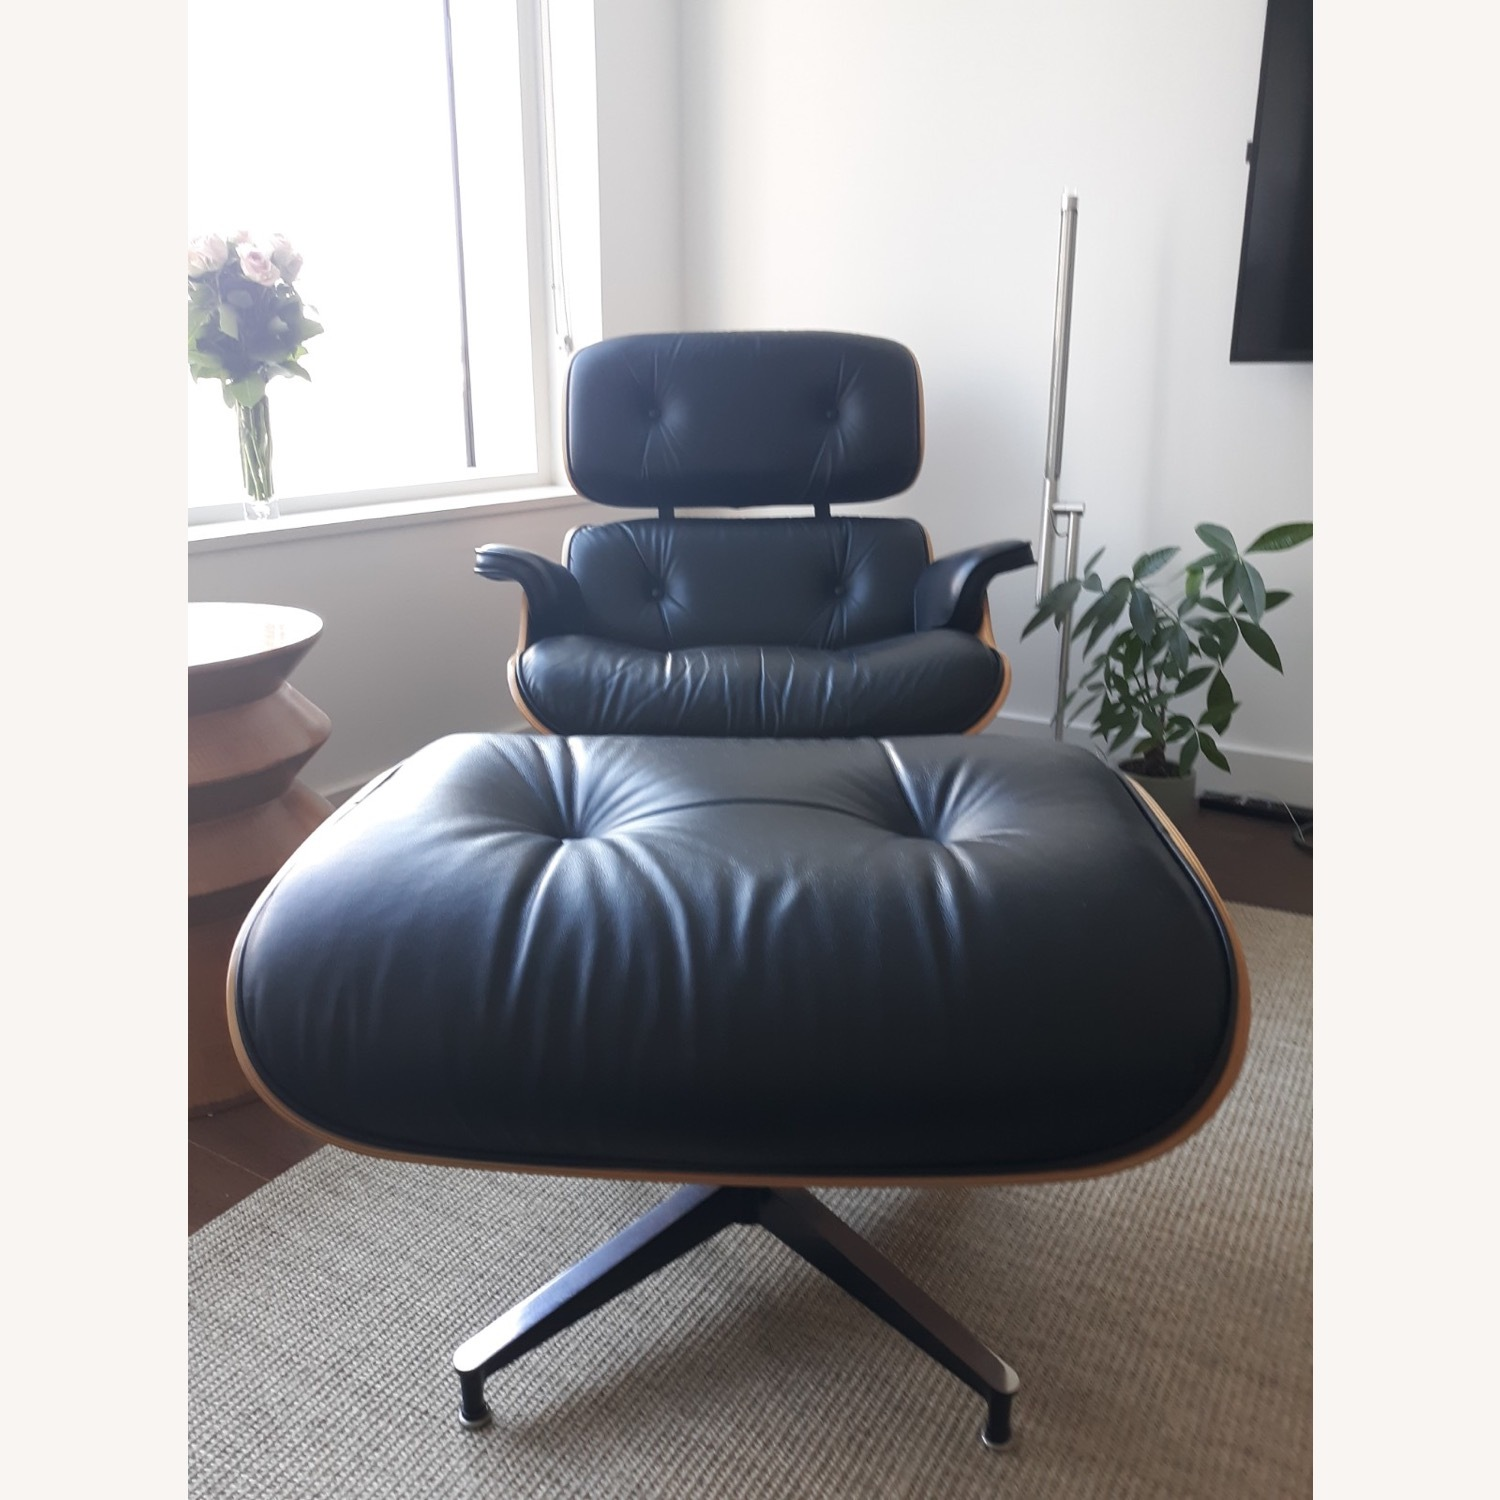 Herman Miller Eames Lounge Chair and Ottoman - image-1